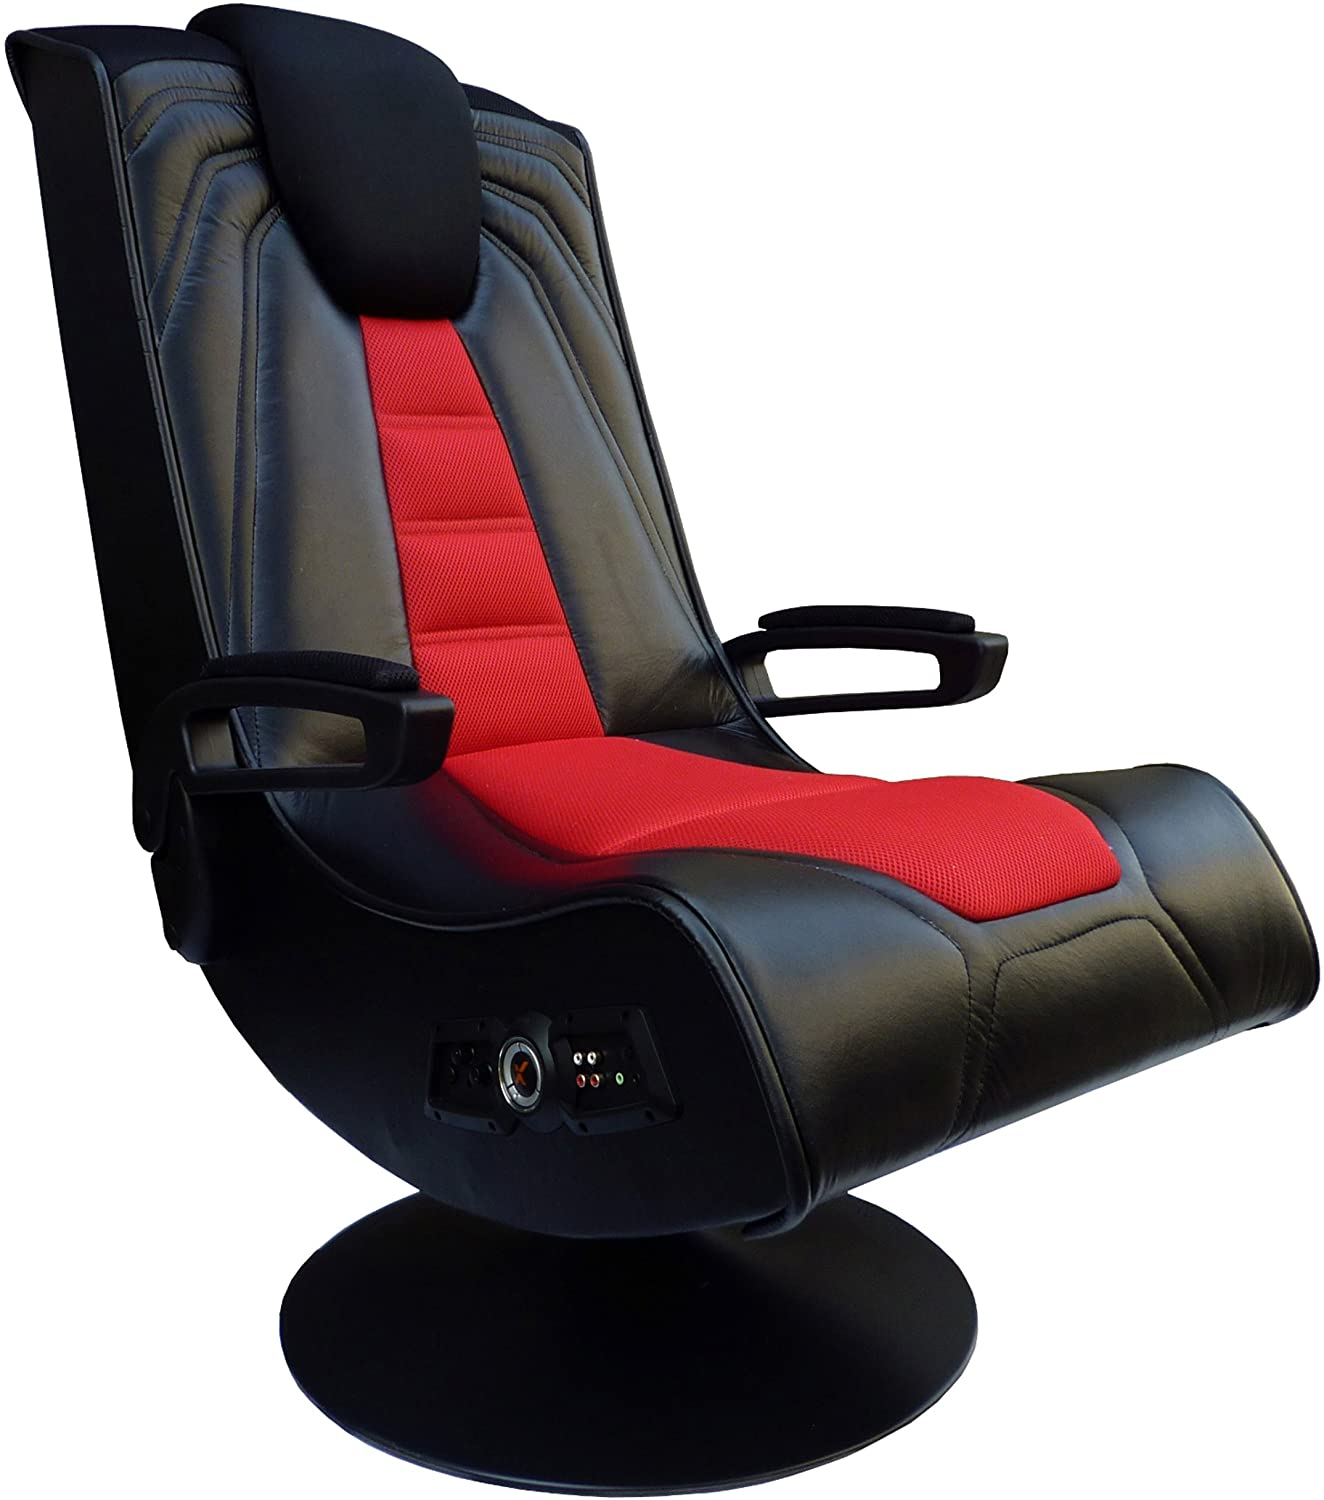 Pedestal Extreme III 2.1 Sound Wireless Video Foldable Gaming Chair